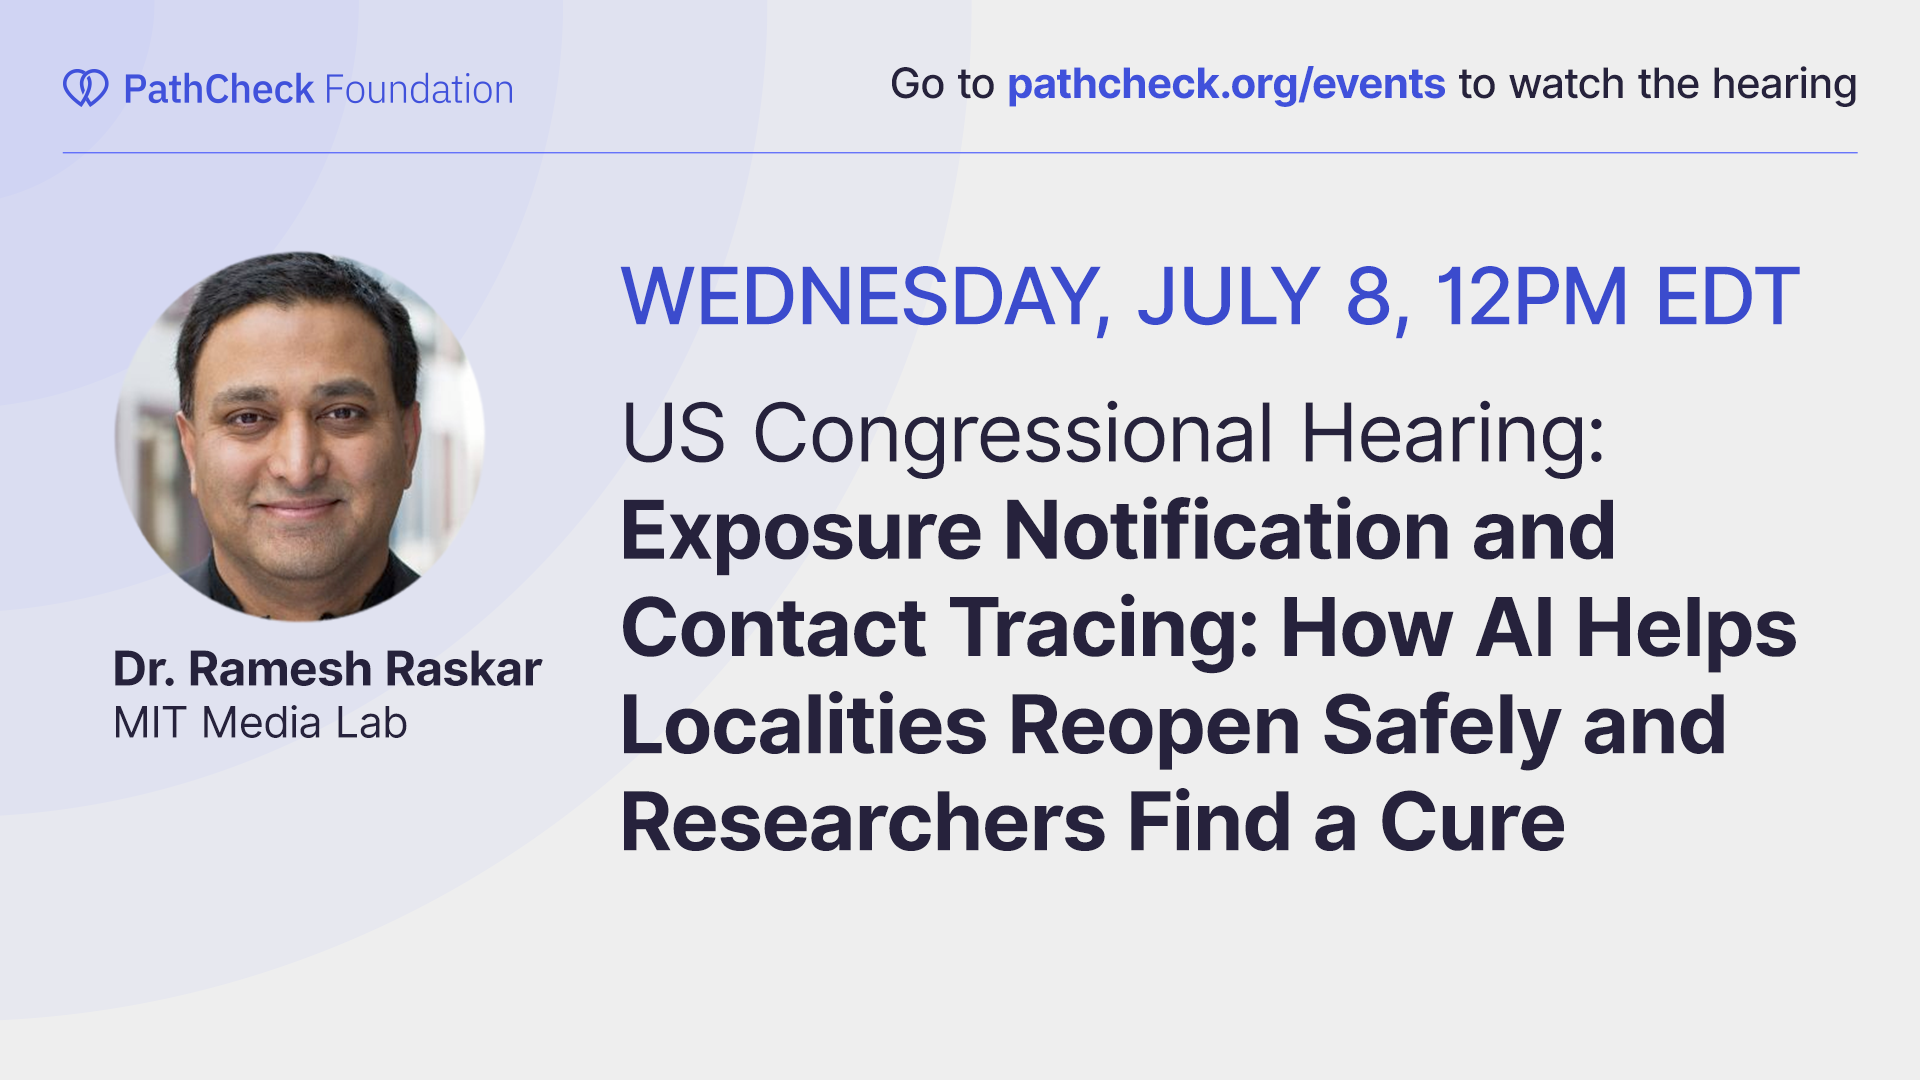 US Congressional Hearing: Exposure Notification and Contact Tracing: How AI Helps Localities Reopen Safely and Researchers Find a Cure. | PathCheck Foundation